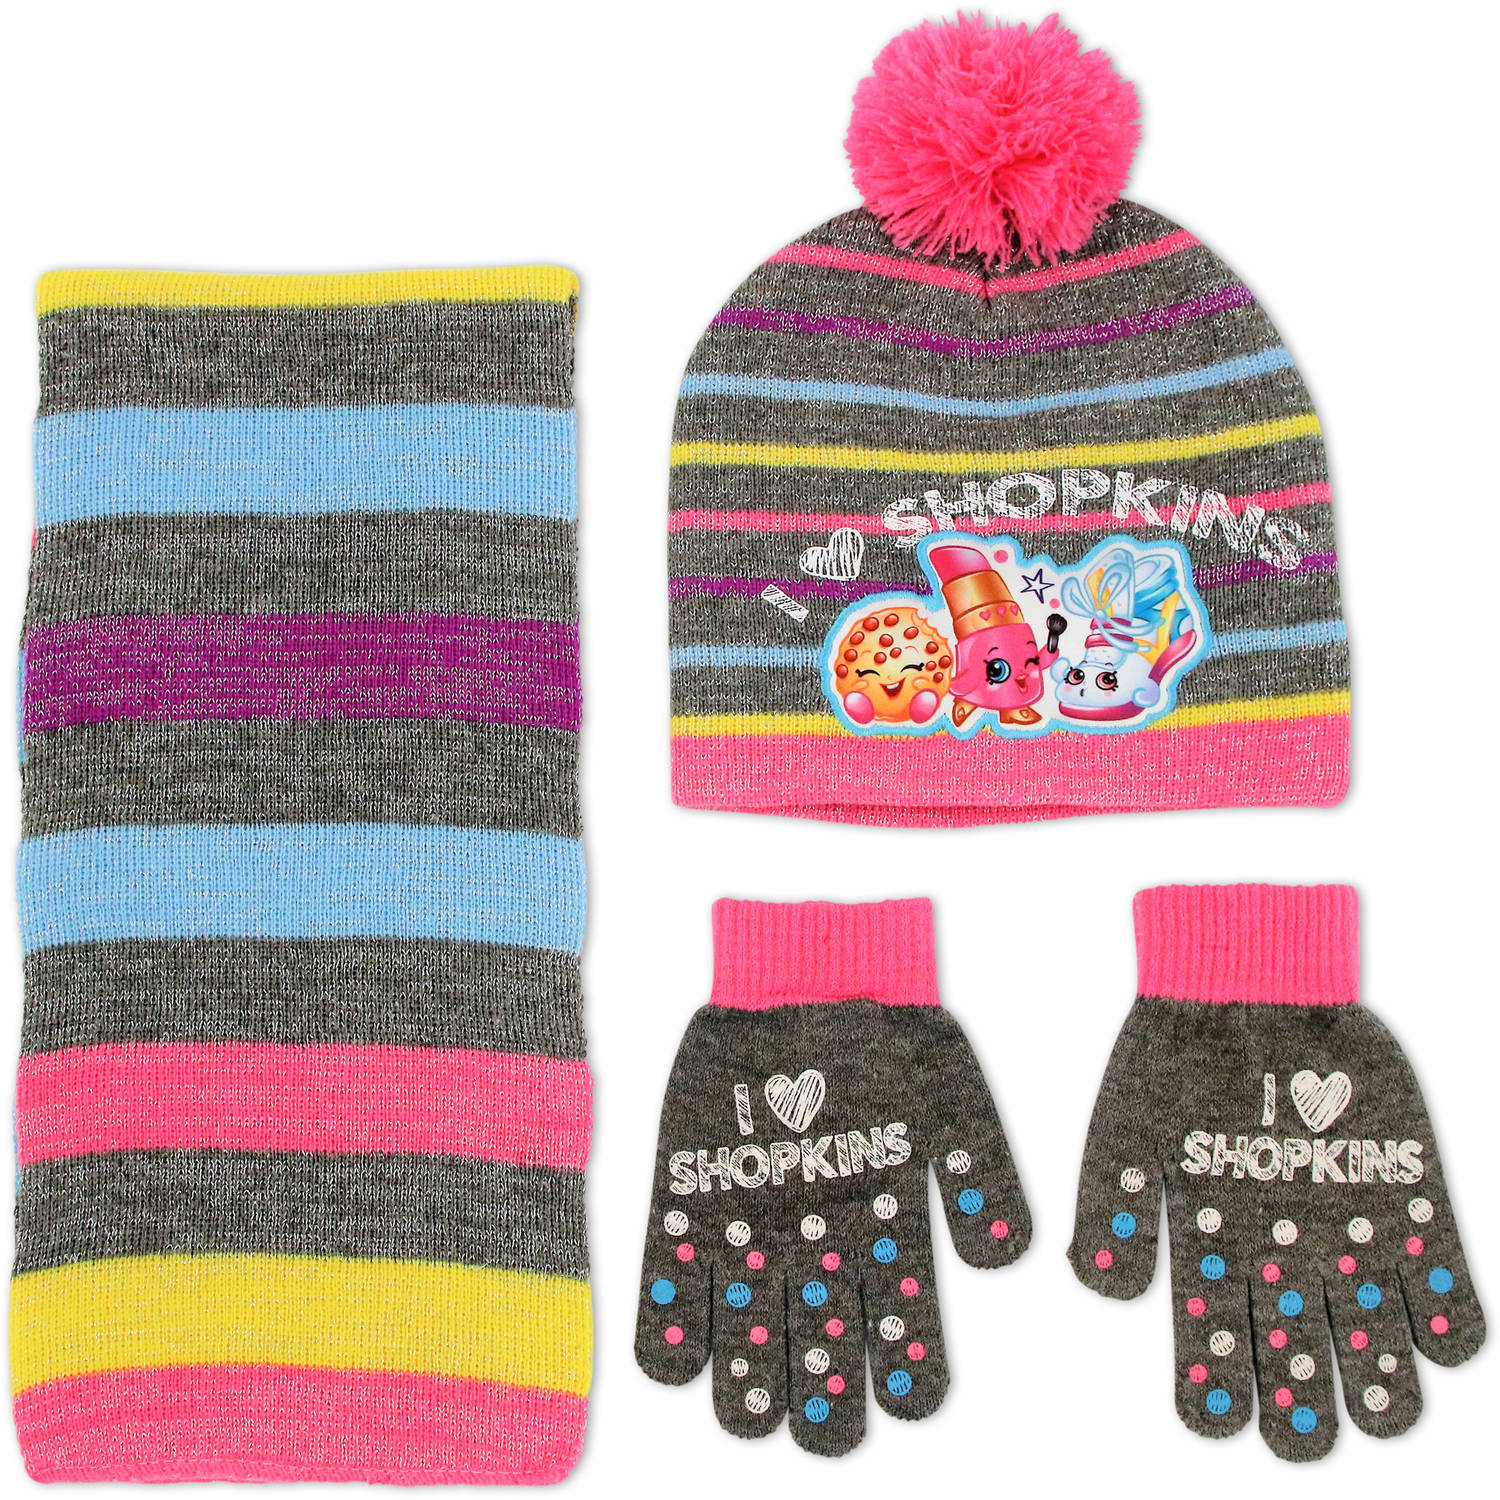 Shopkins Girls Acrylic Knit Winter Beanie Pom Hat With Matching Gloves And Scarf Set